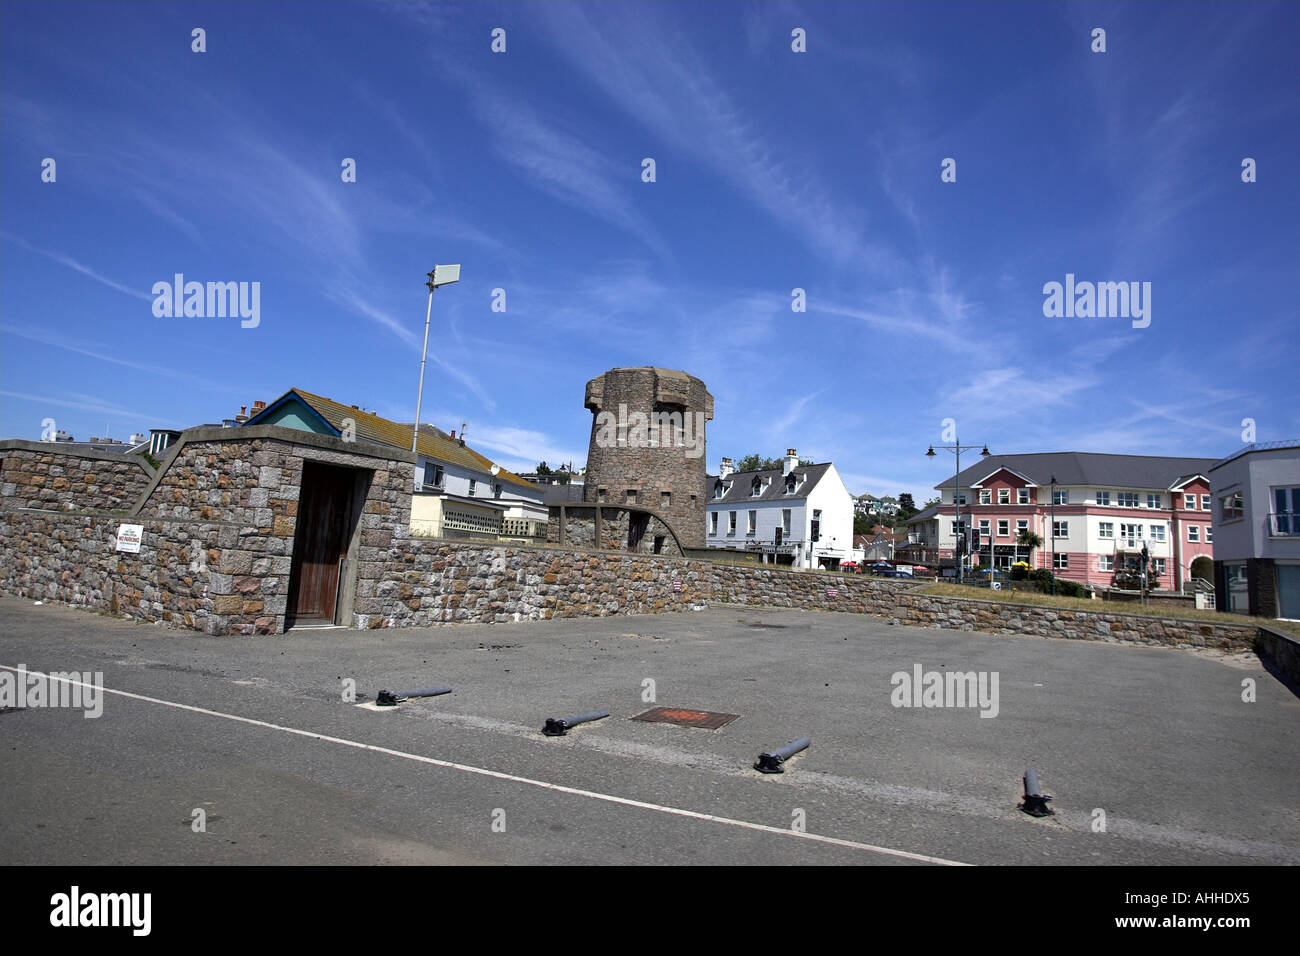 First Tower St Helier Channel High Resolution Stock Photography ...